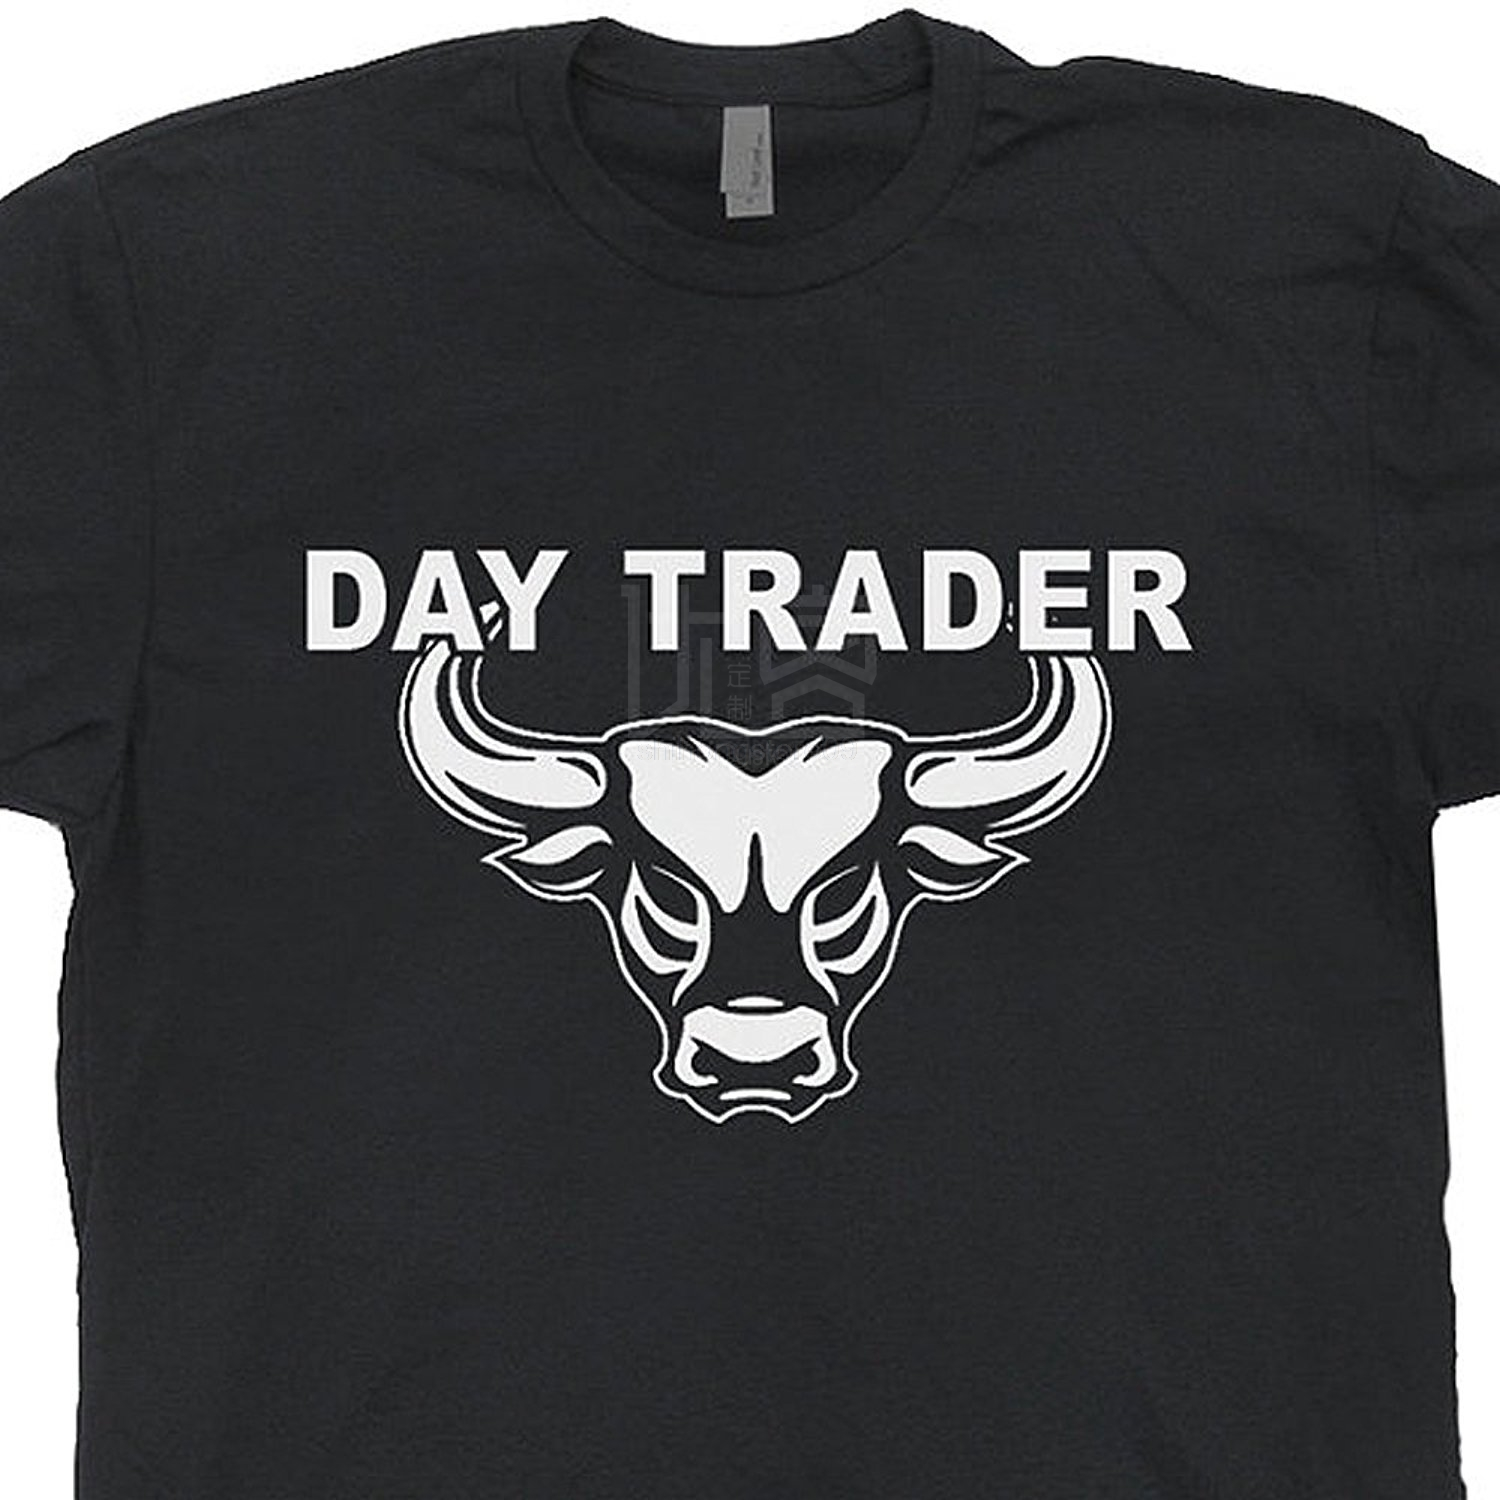 2019 Day Trader T Shirt Bitcoin Shirts Wall Street Mad Stock Market Money Trading Tshirt Forex Book Guide Wall Street Bull Tee image